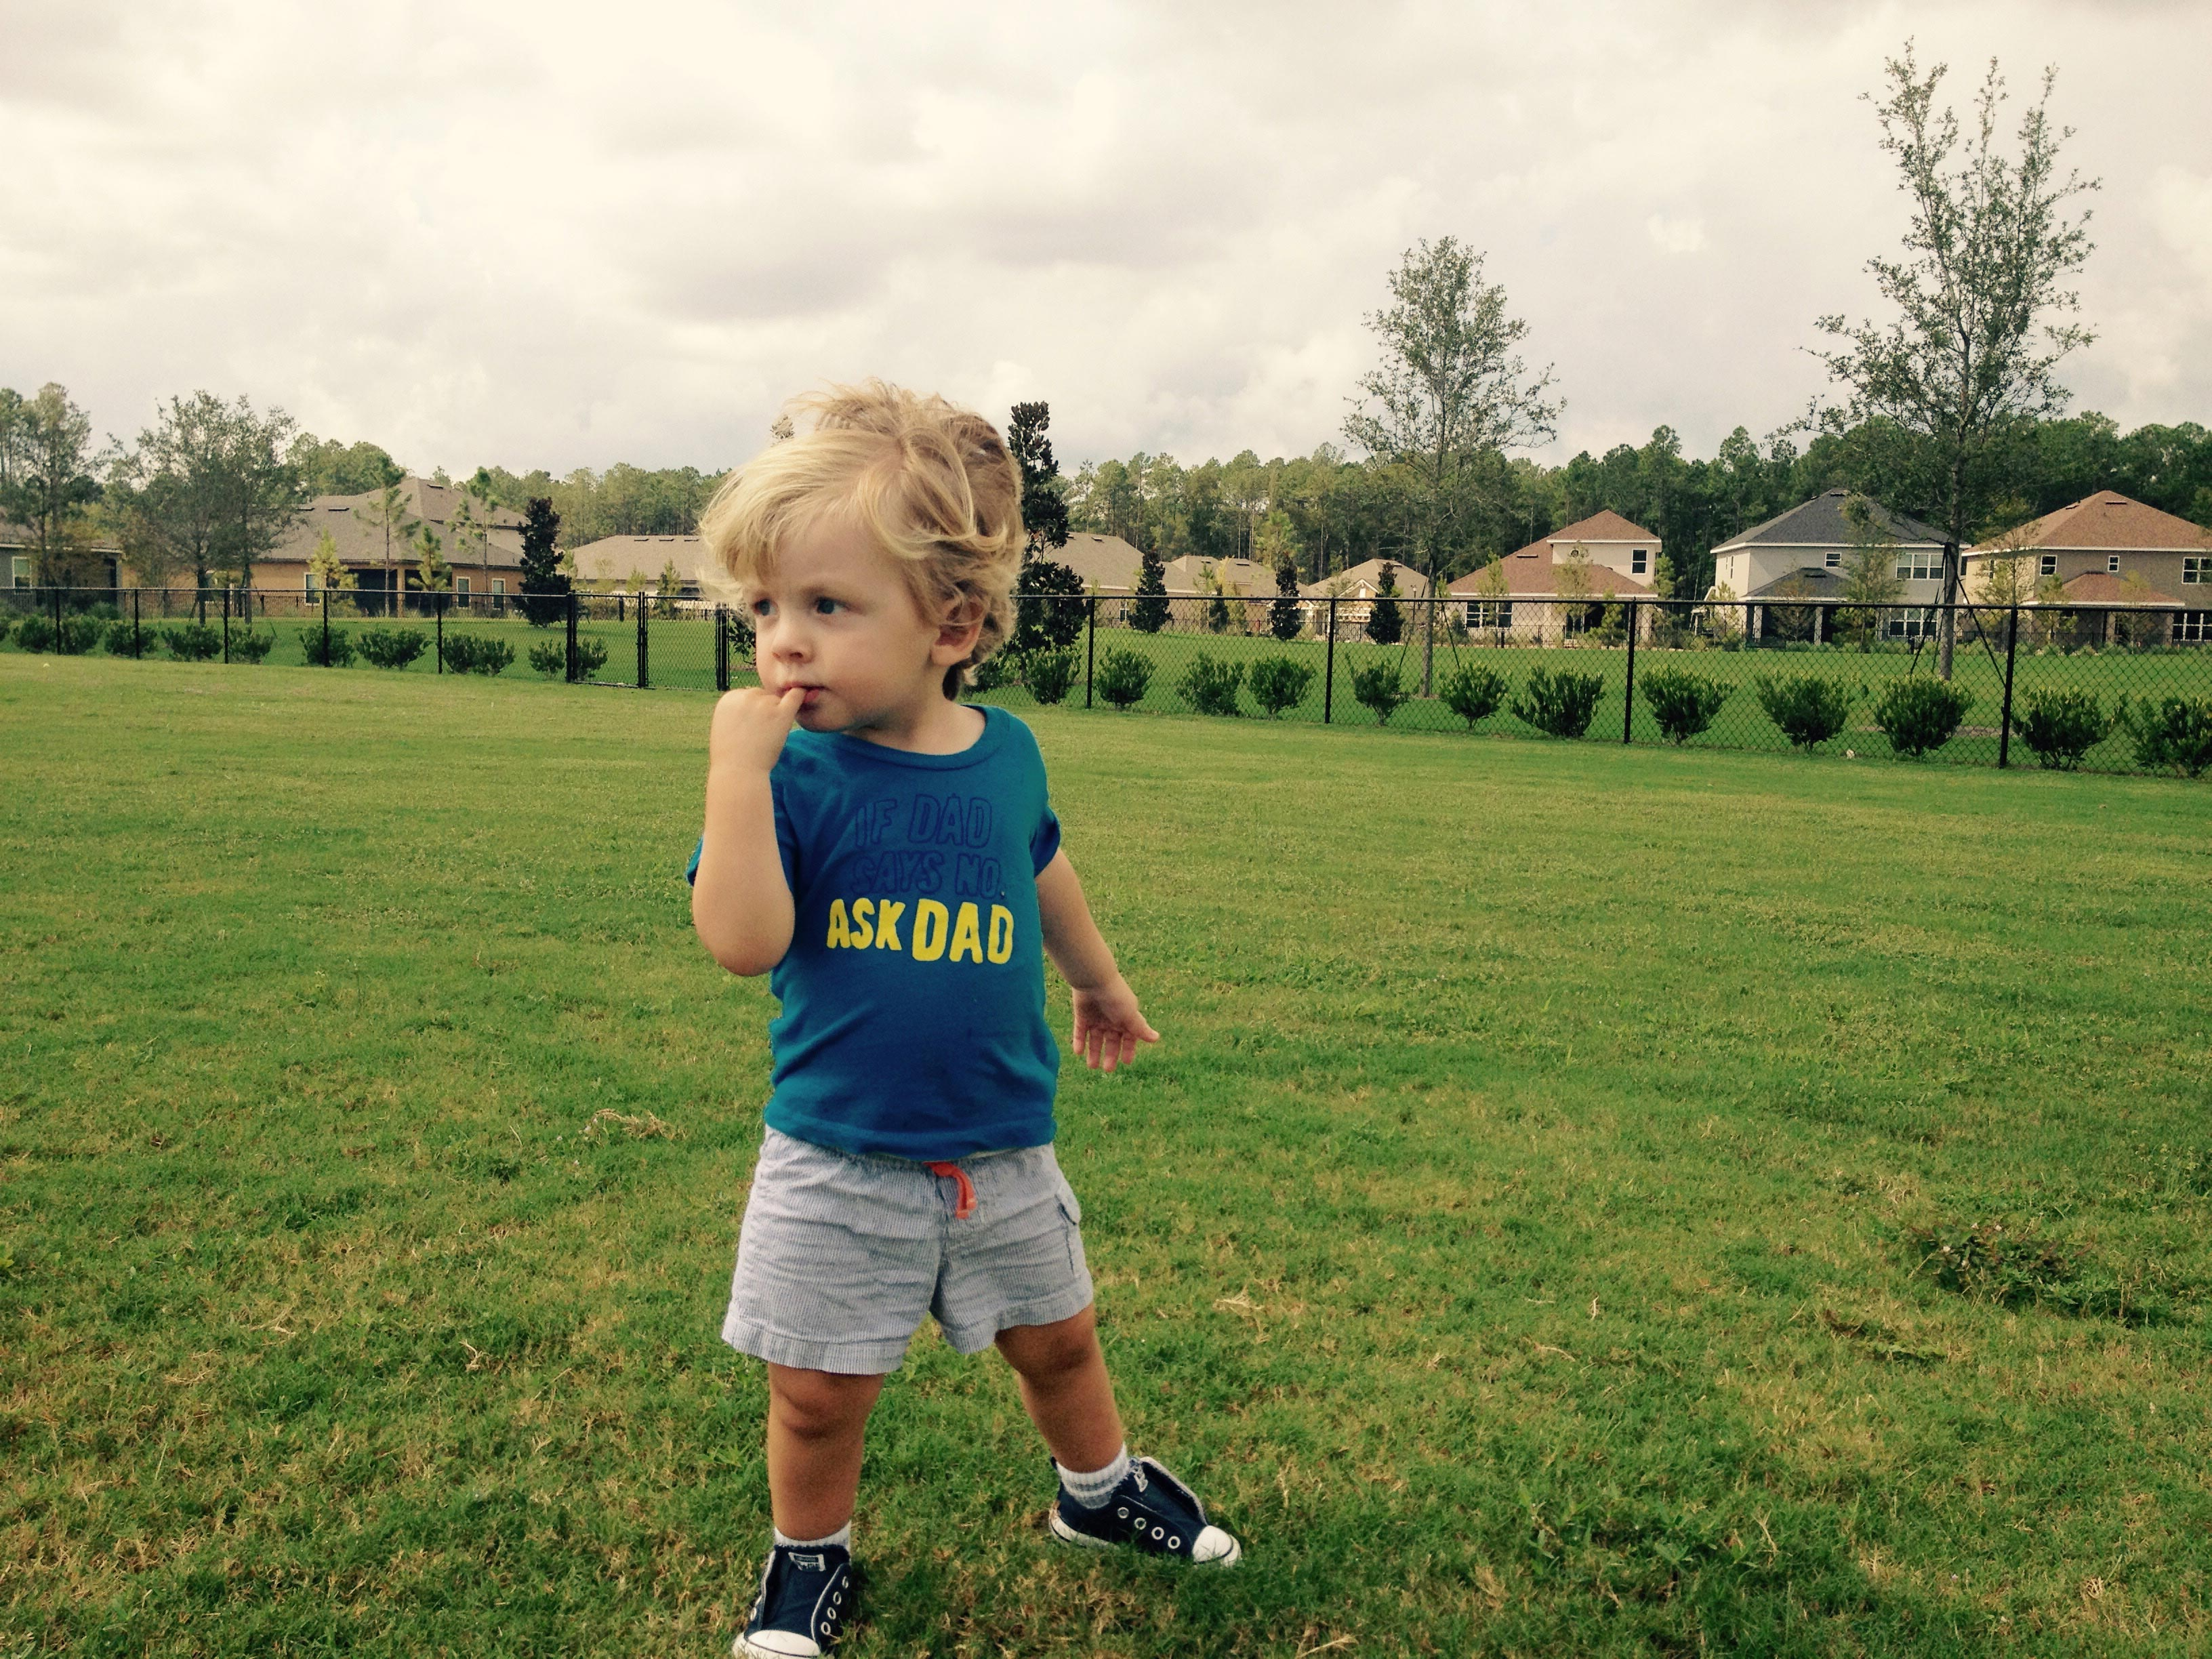 Hayden strikes a stoic pose at the playground.